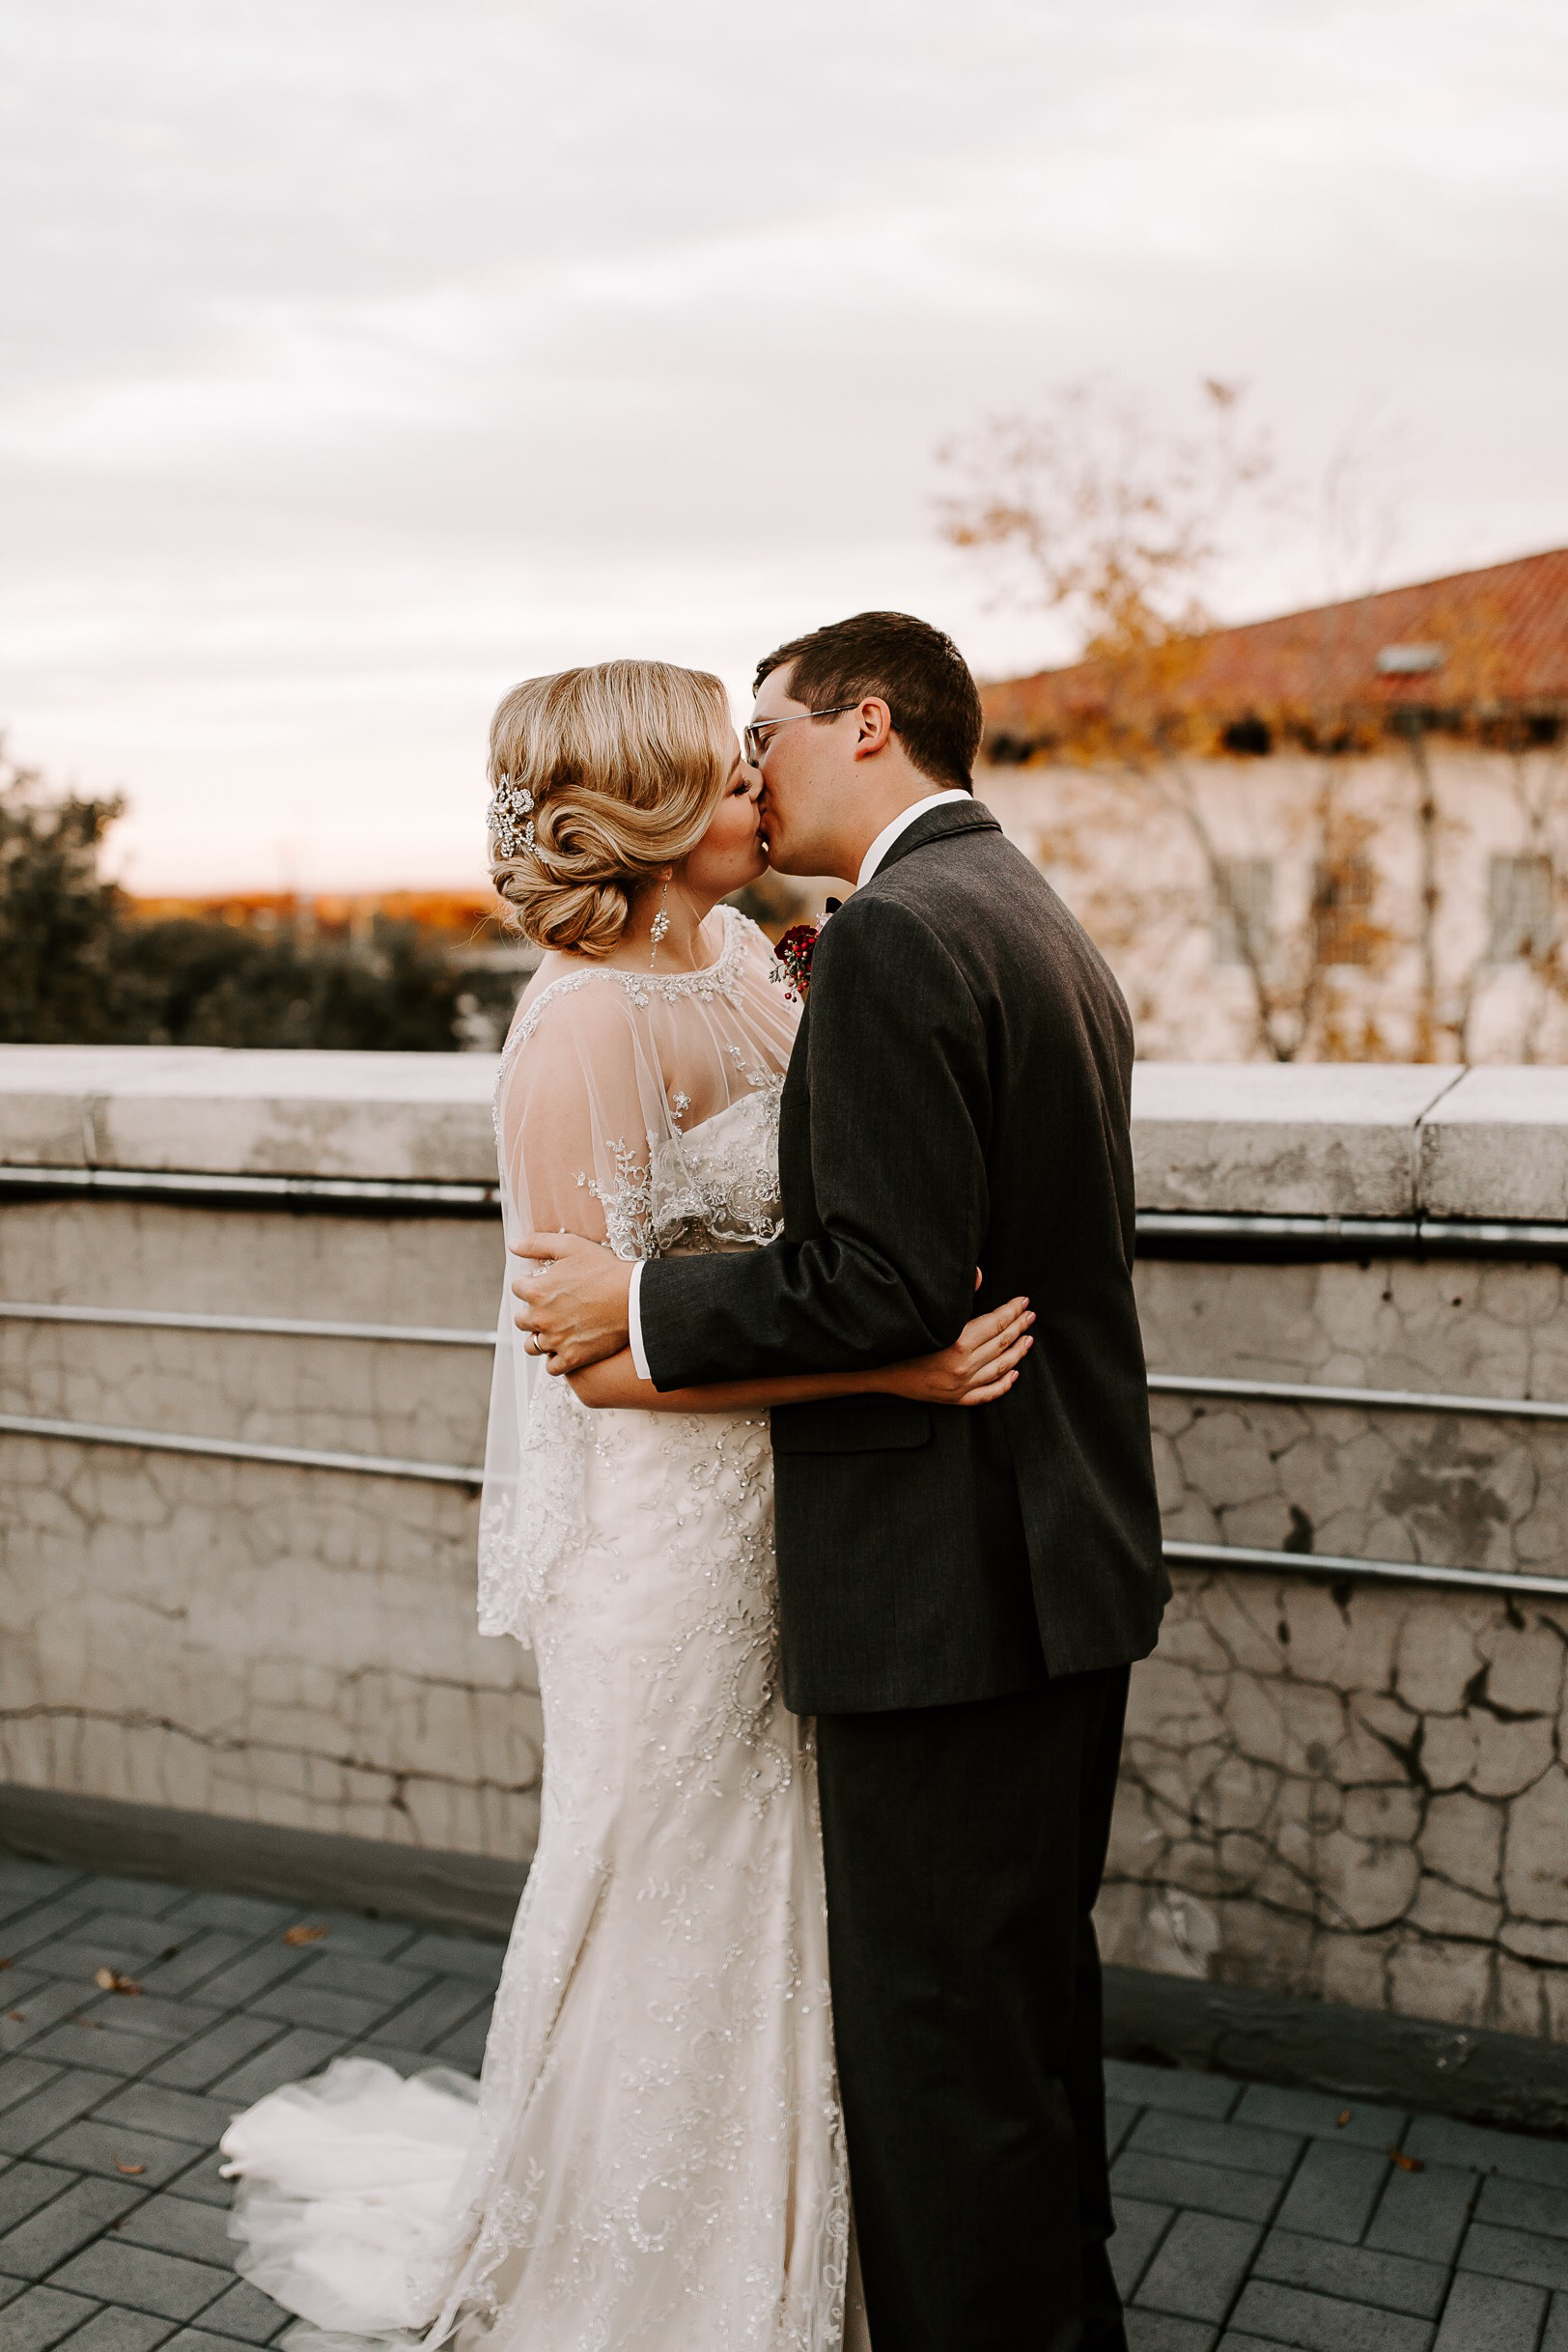 """- 9. VINTAGE GLAMOURTHE S CURL STANDS FOR """"STATEMENT"""" WITH THIS DRAMATIC, SIDE-SWEPT UPDO....BRIDE: DEVON ROGERS BILBROHAIR STYLIST: MADISON BILELLO HAIR AND MAKEUPPHOTOGRAPHER: RENDY TAYLOR"""